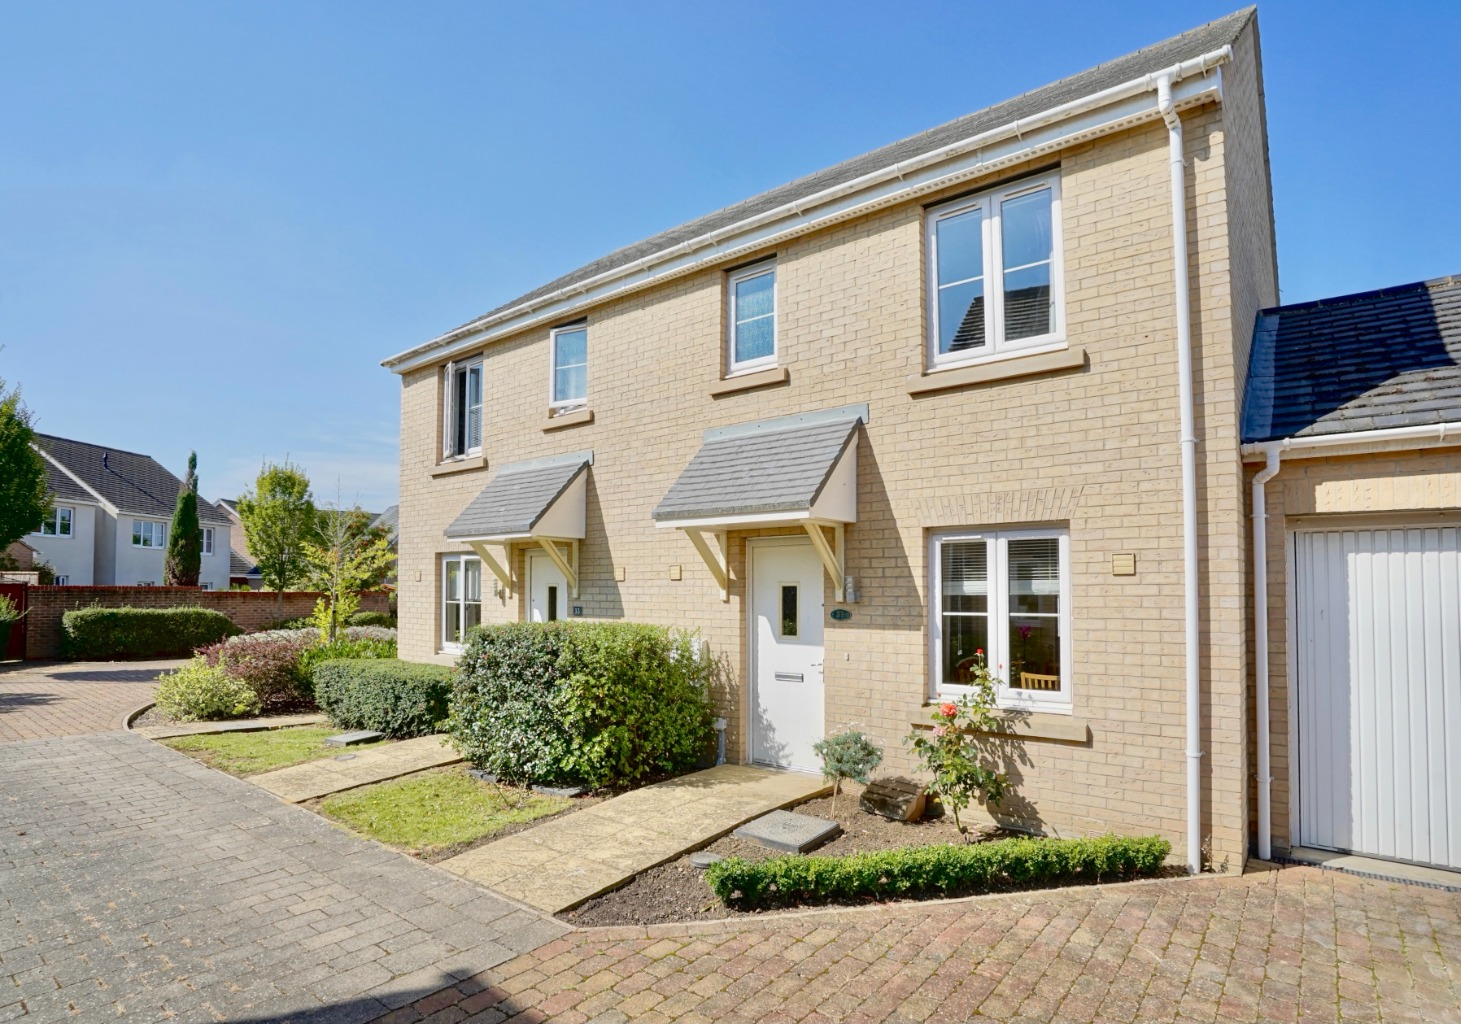 3 bed  for sale in Fox Brook, St. Neots, PE19